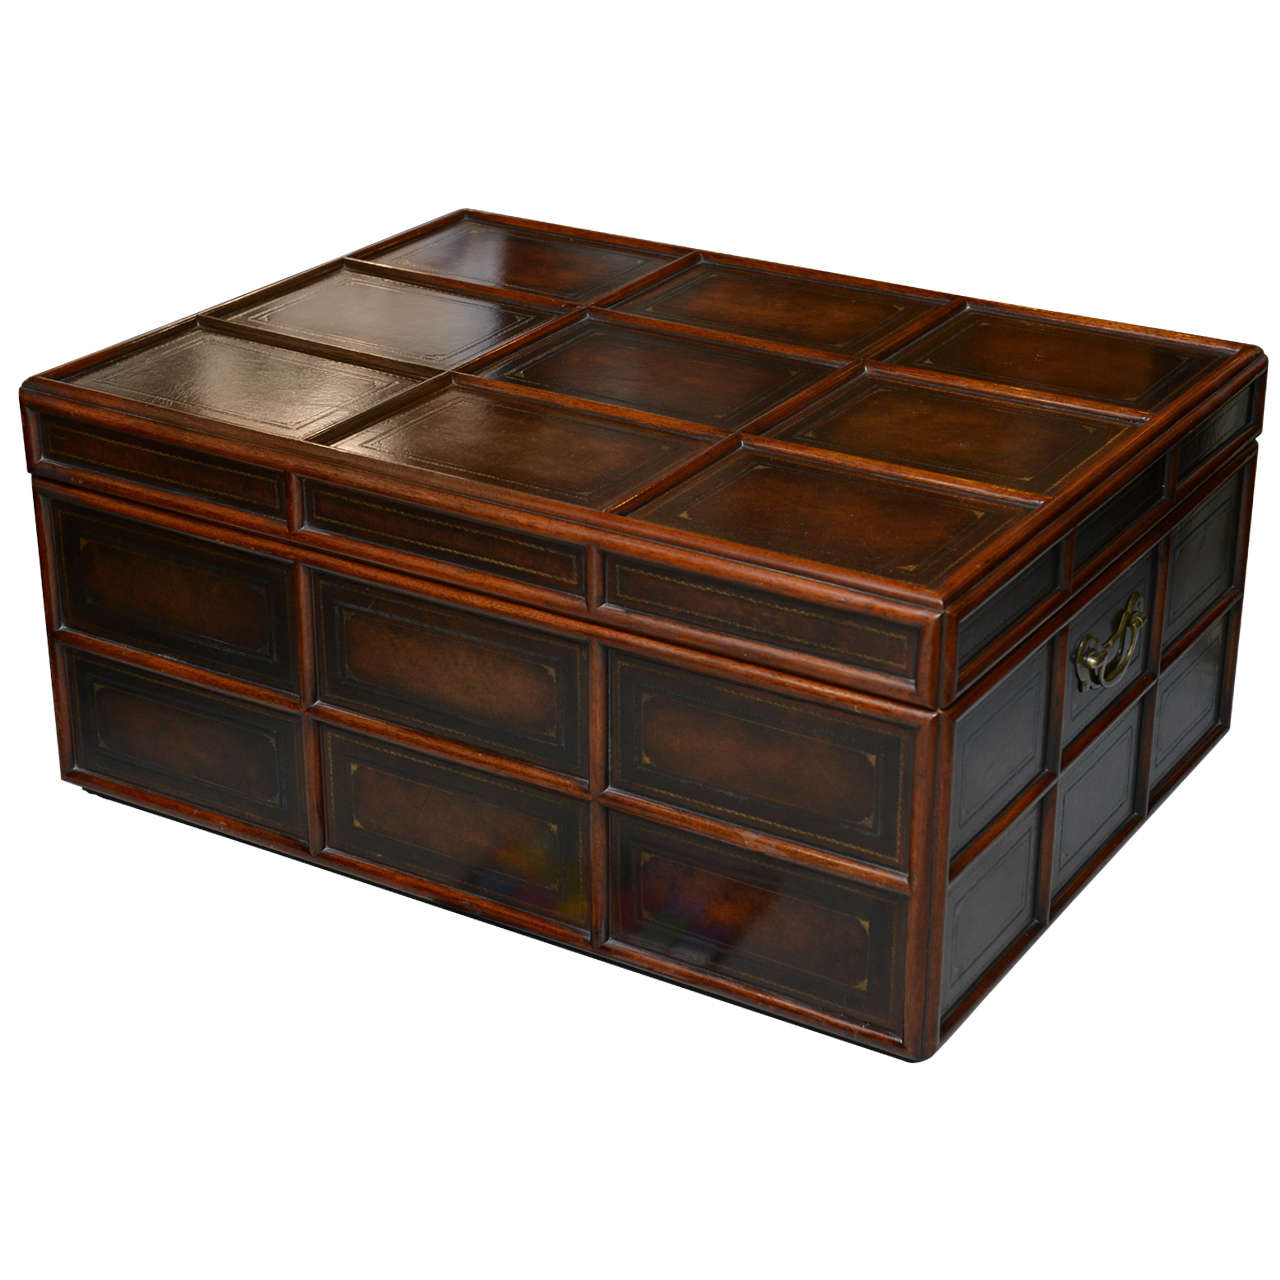 Vintage Wood and Leather Trunk by Maitland Smith at 1stdibs